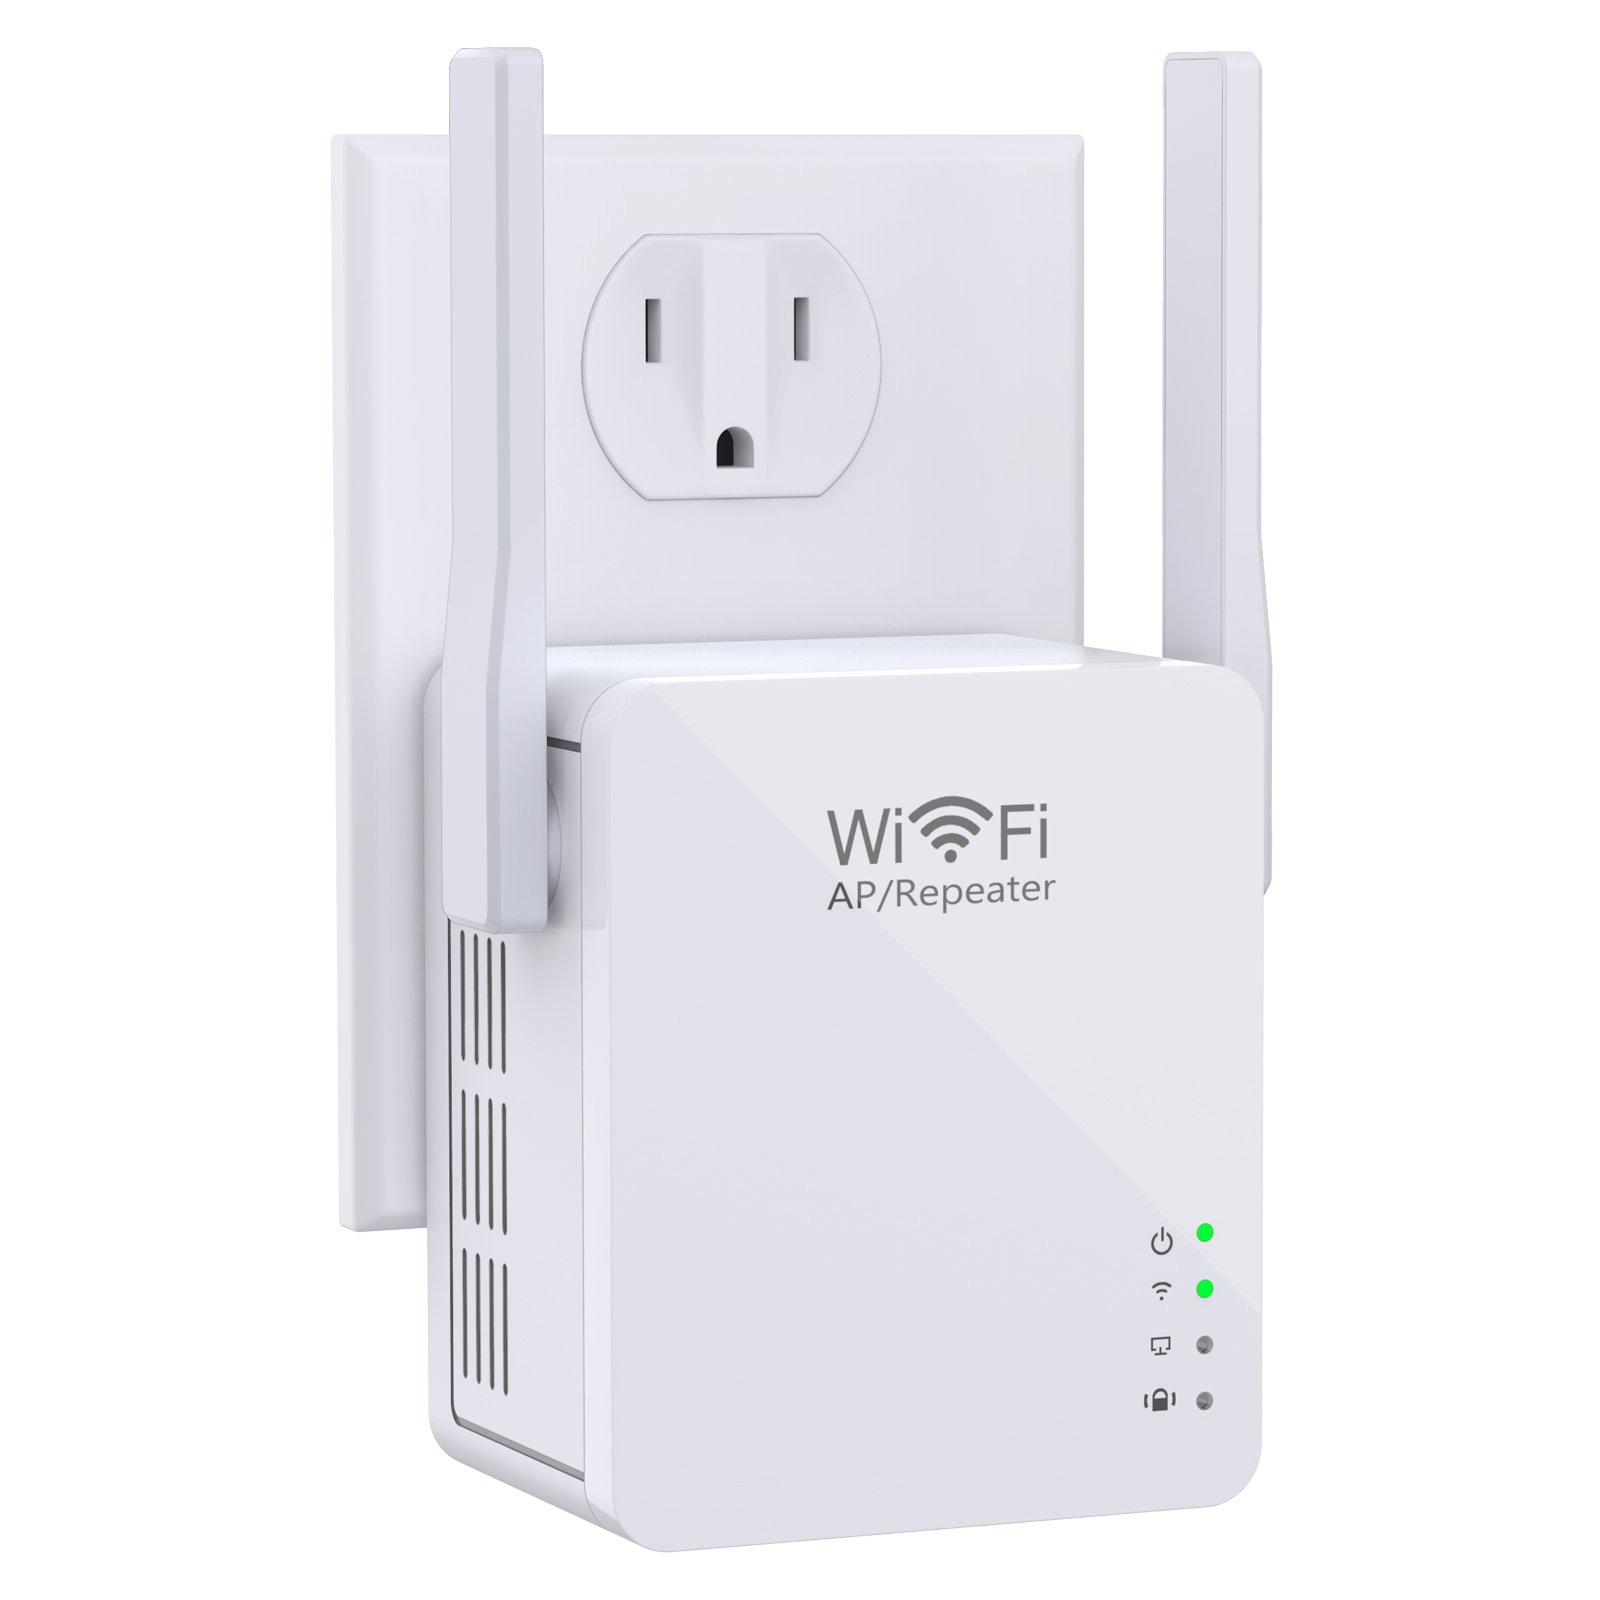 Ahutoru Wi-Fi Range Extender, Access Point Mode /Repeater Mode WiFi Repeater With Micro USB Port (White)